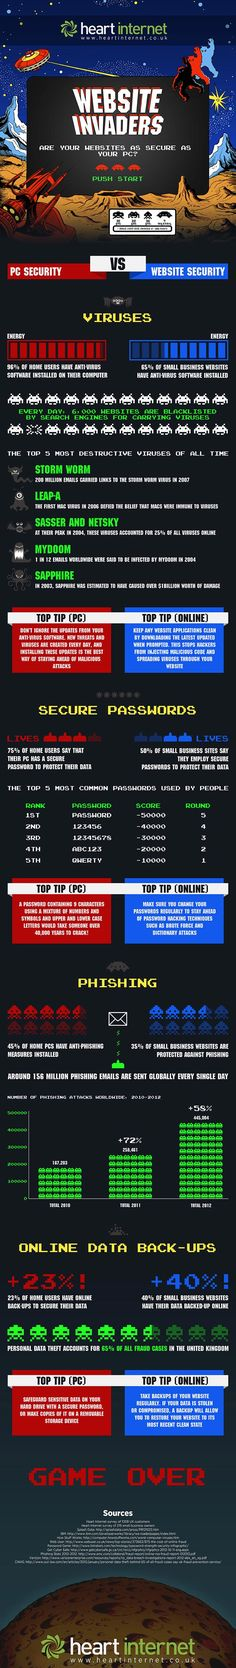 Website Invaders: PC Security Vs. Website Security [Infographic]